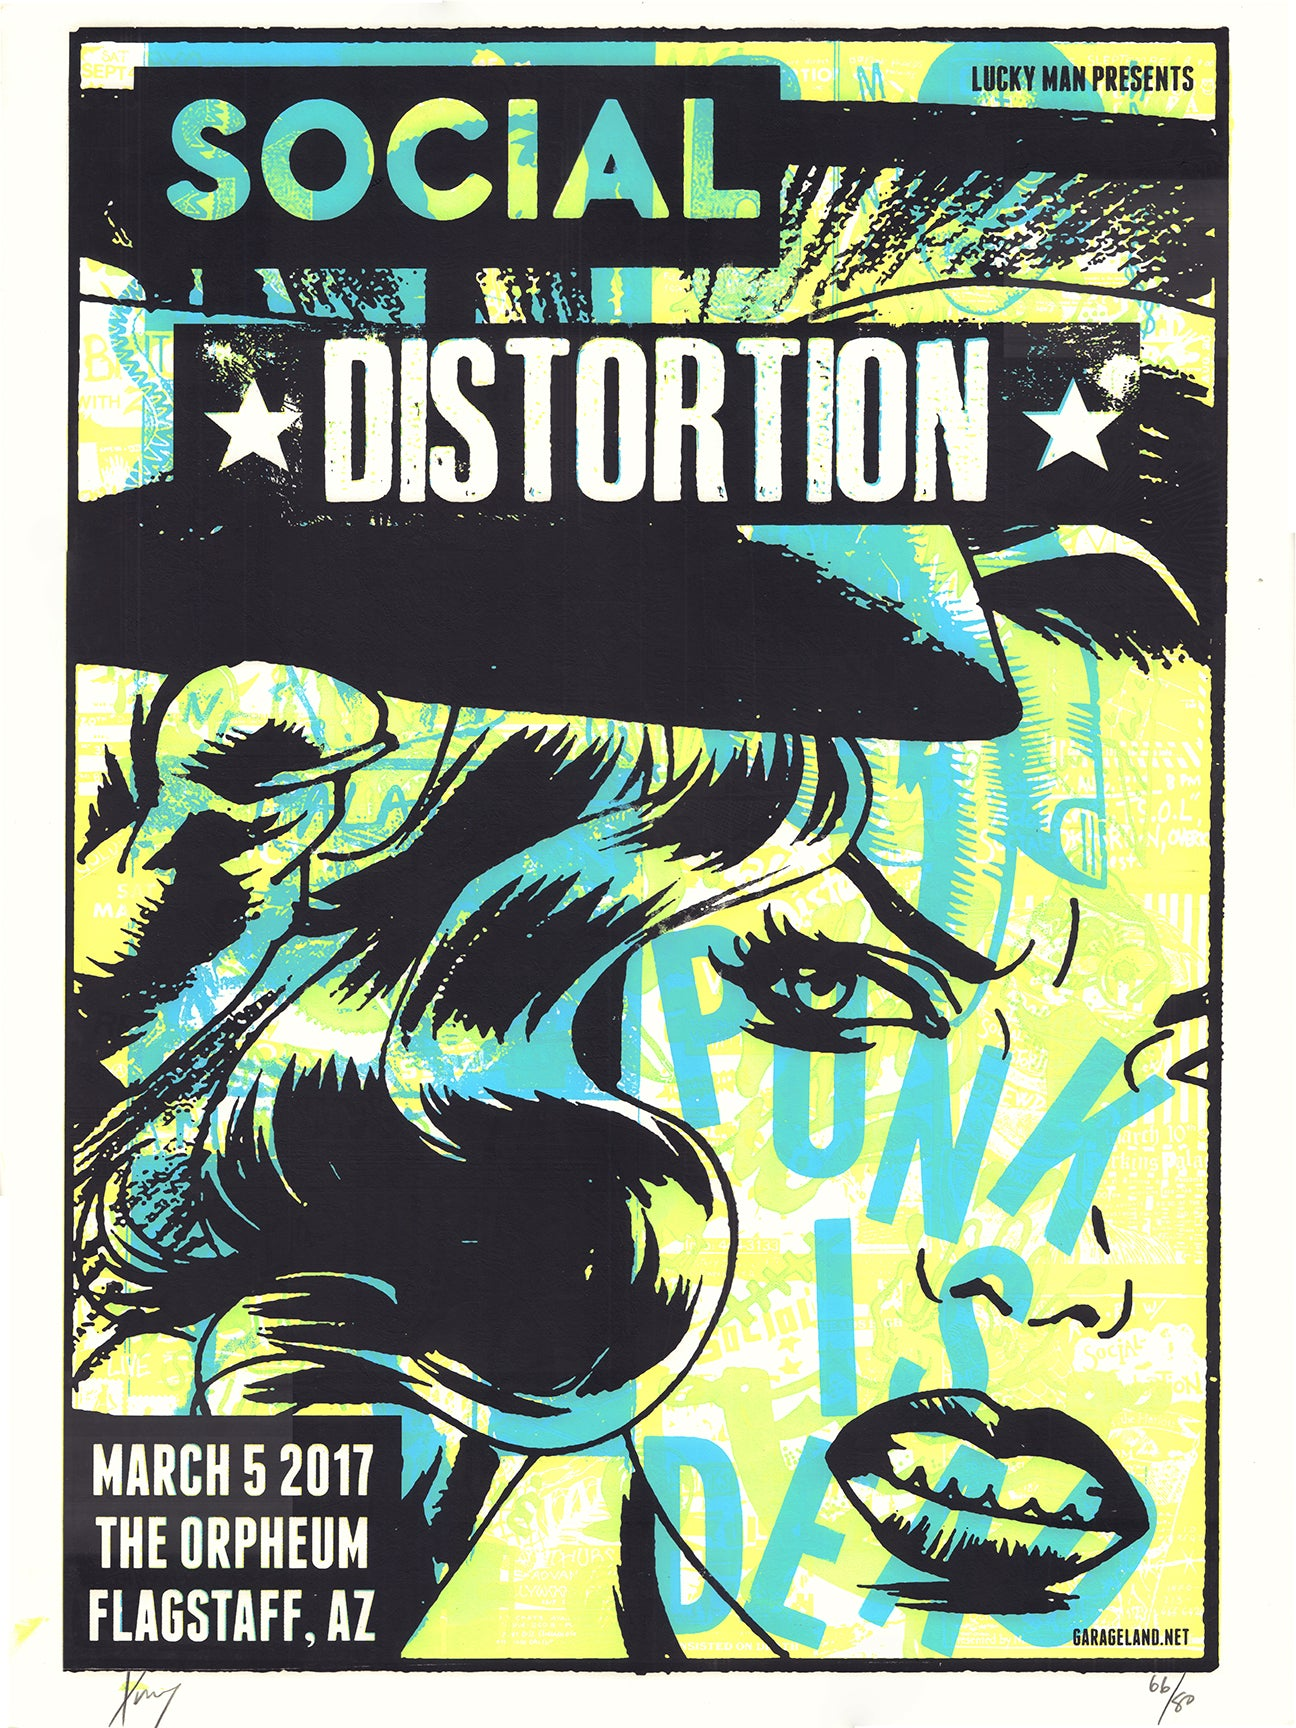 Social Distortion at The Orpheum Print